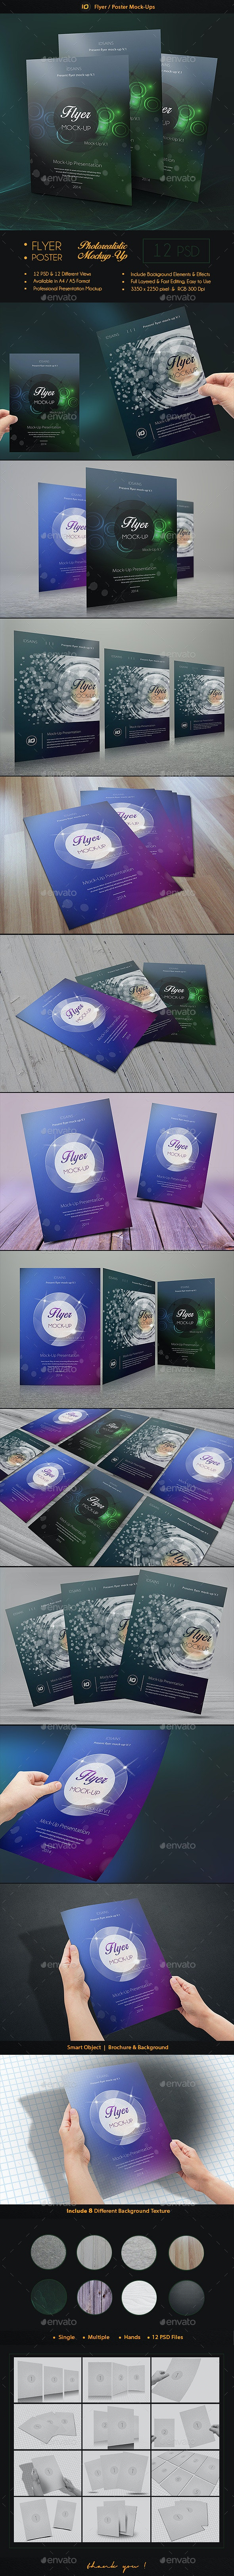 ID Flyer Mock-Up - Print Product Mock-Ups